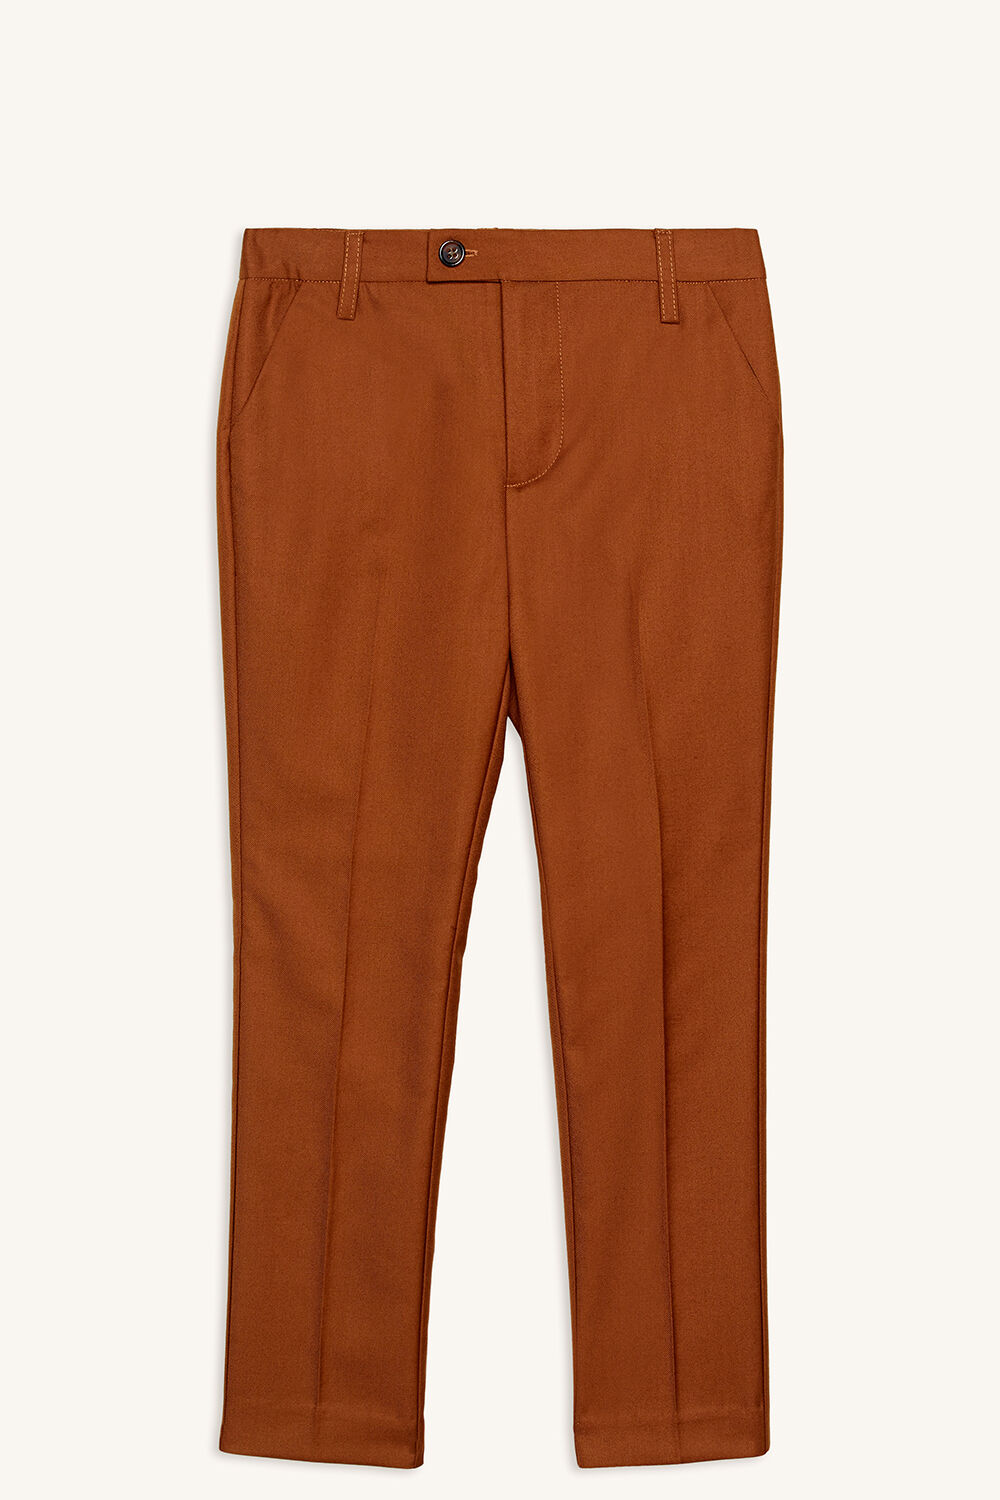 CLASSIC SUIT PANT in colour CASHEW